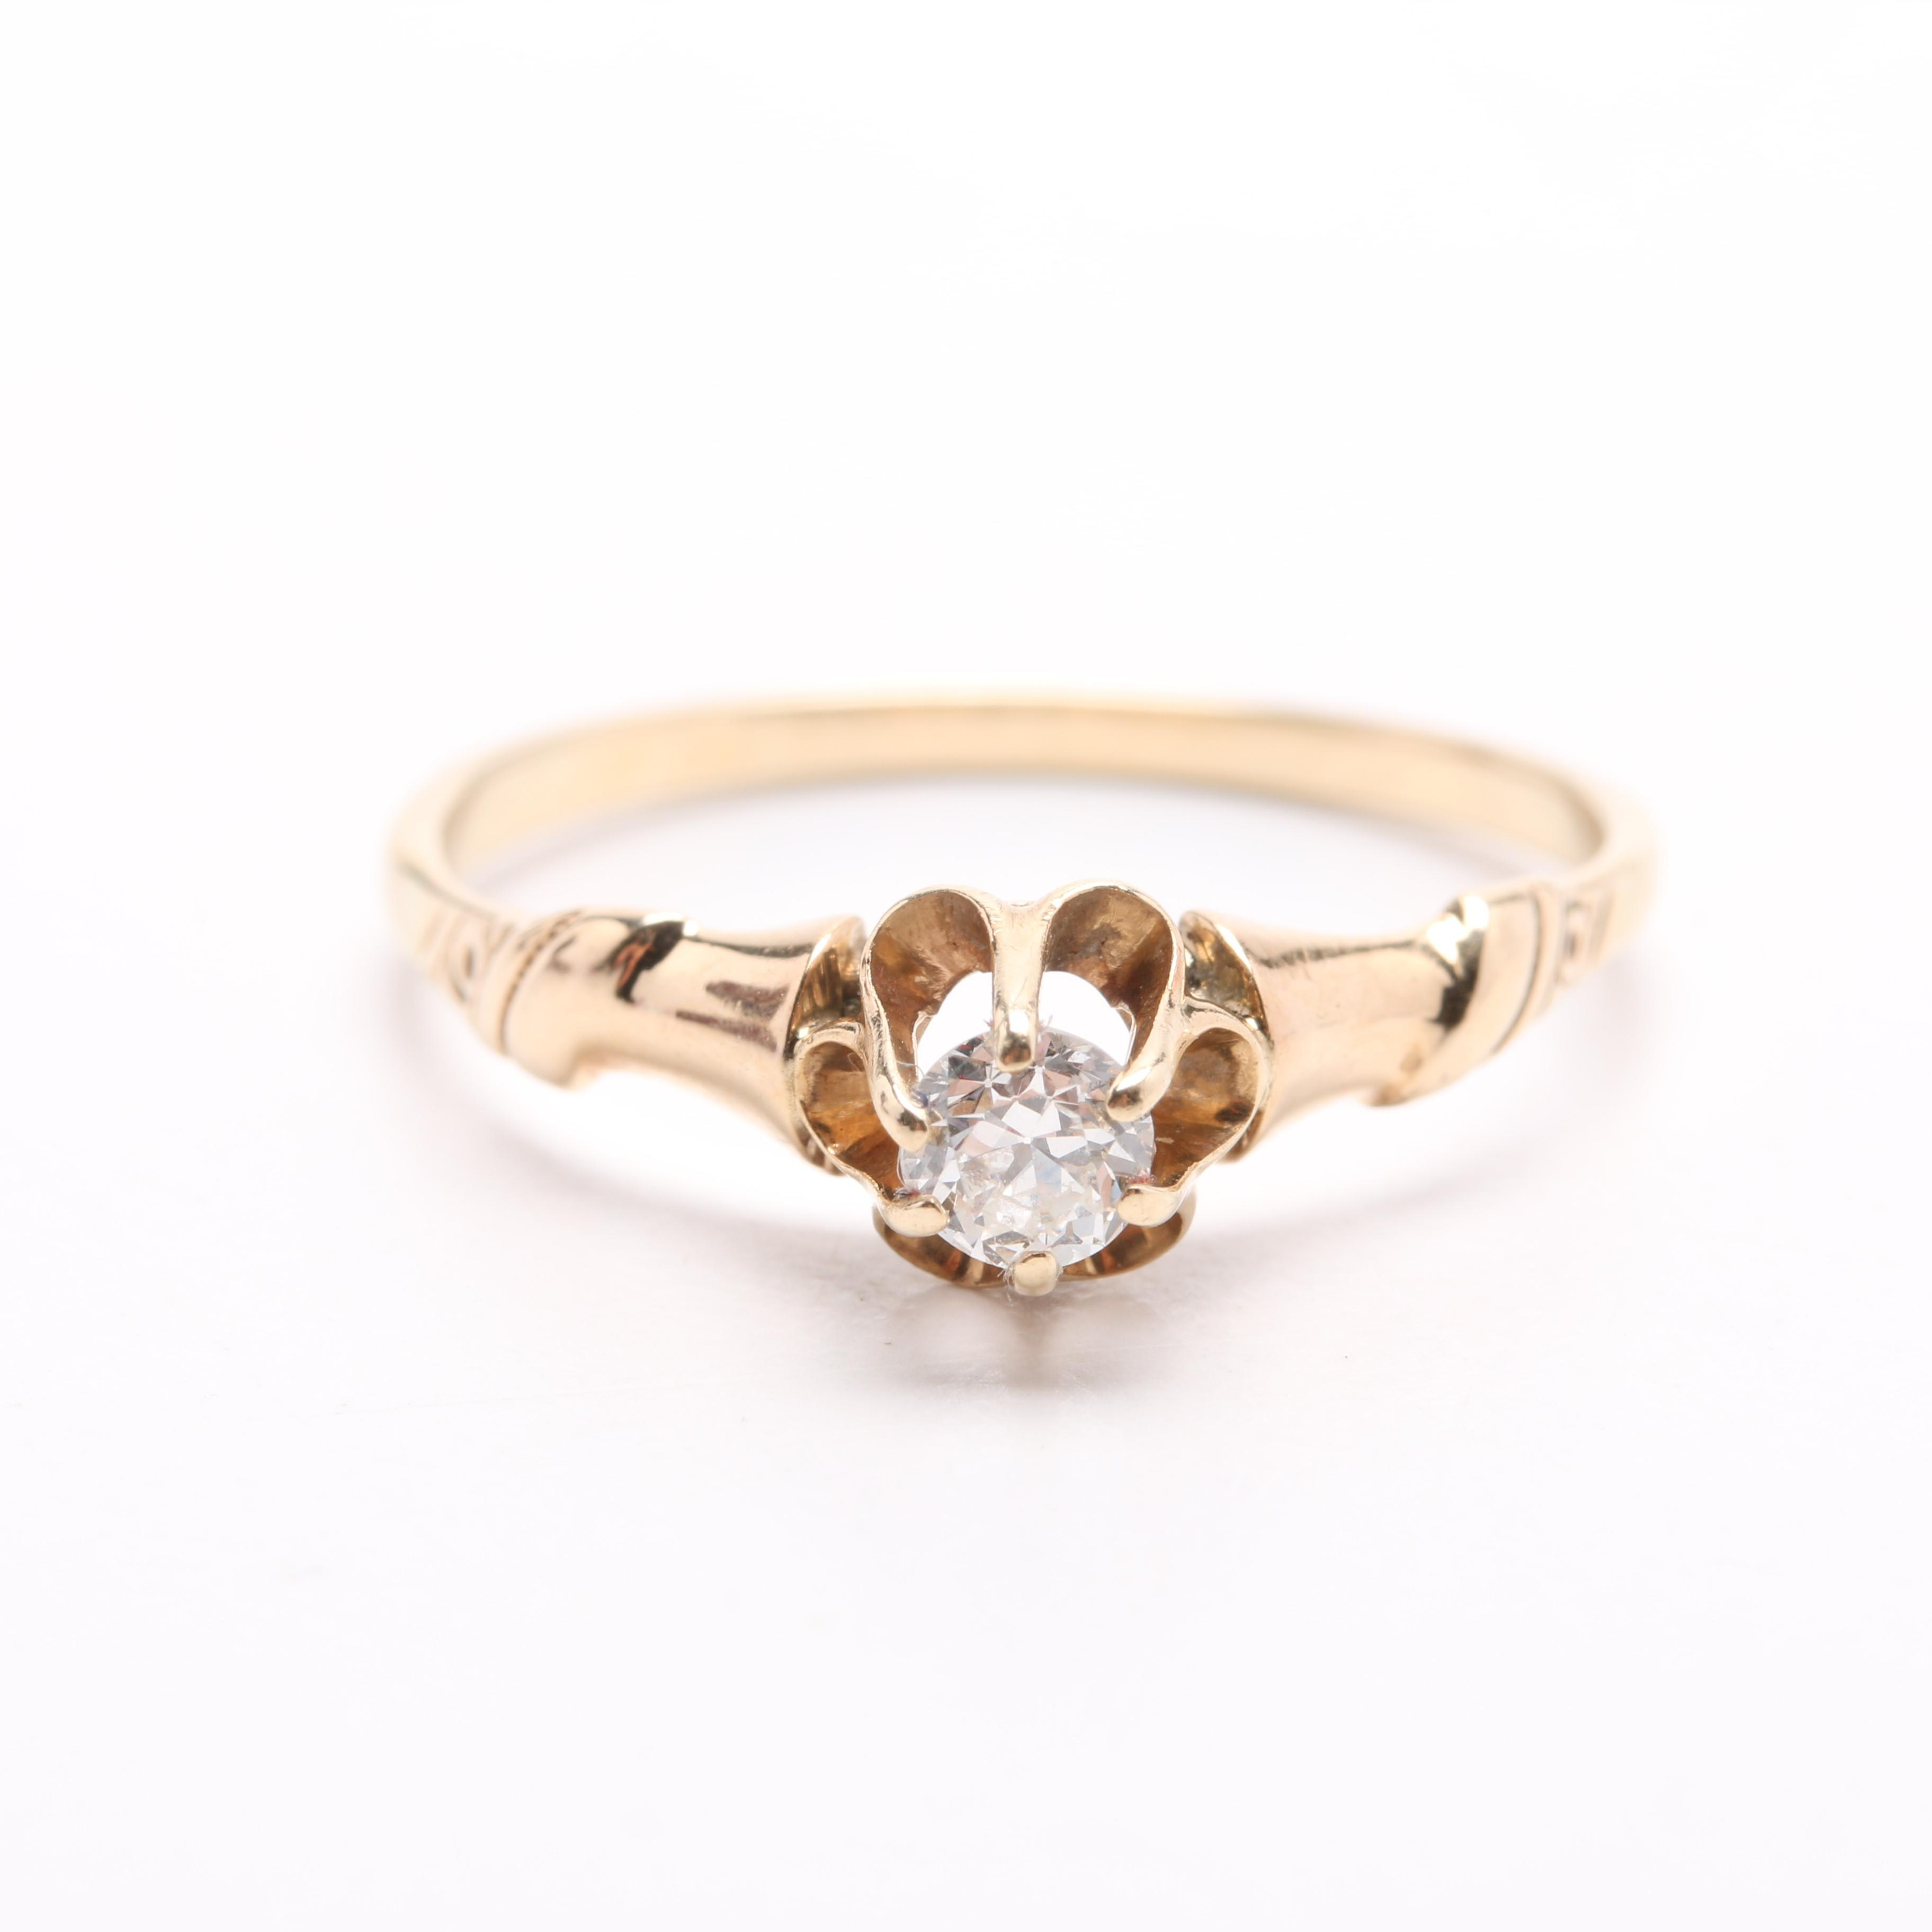 Victorian 14K Yellow Gold Diamond Solitaire Ring